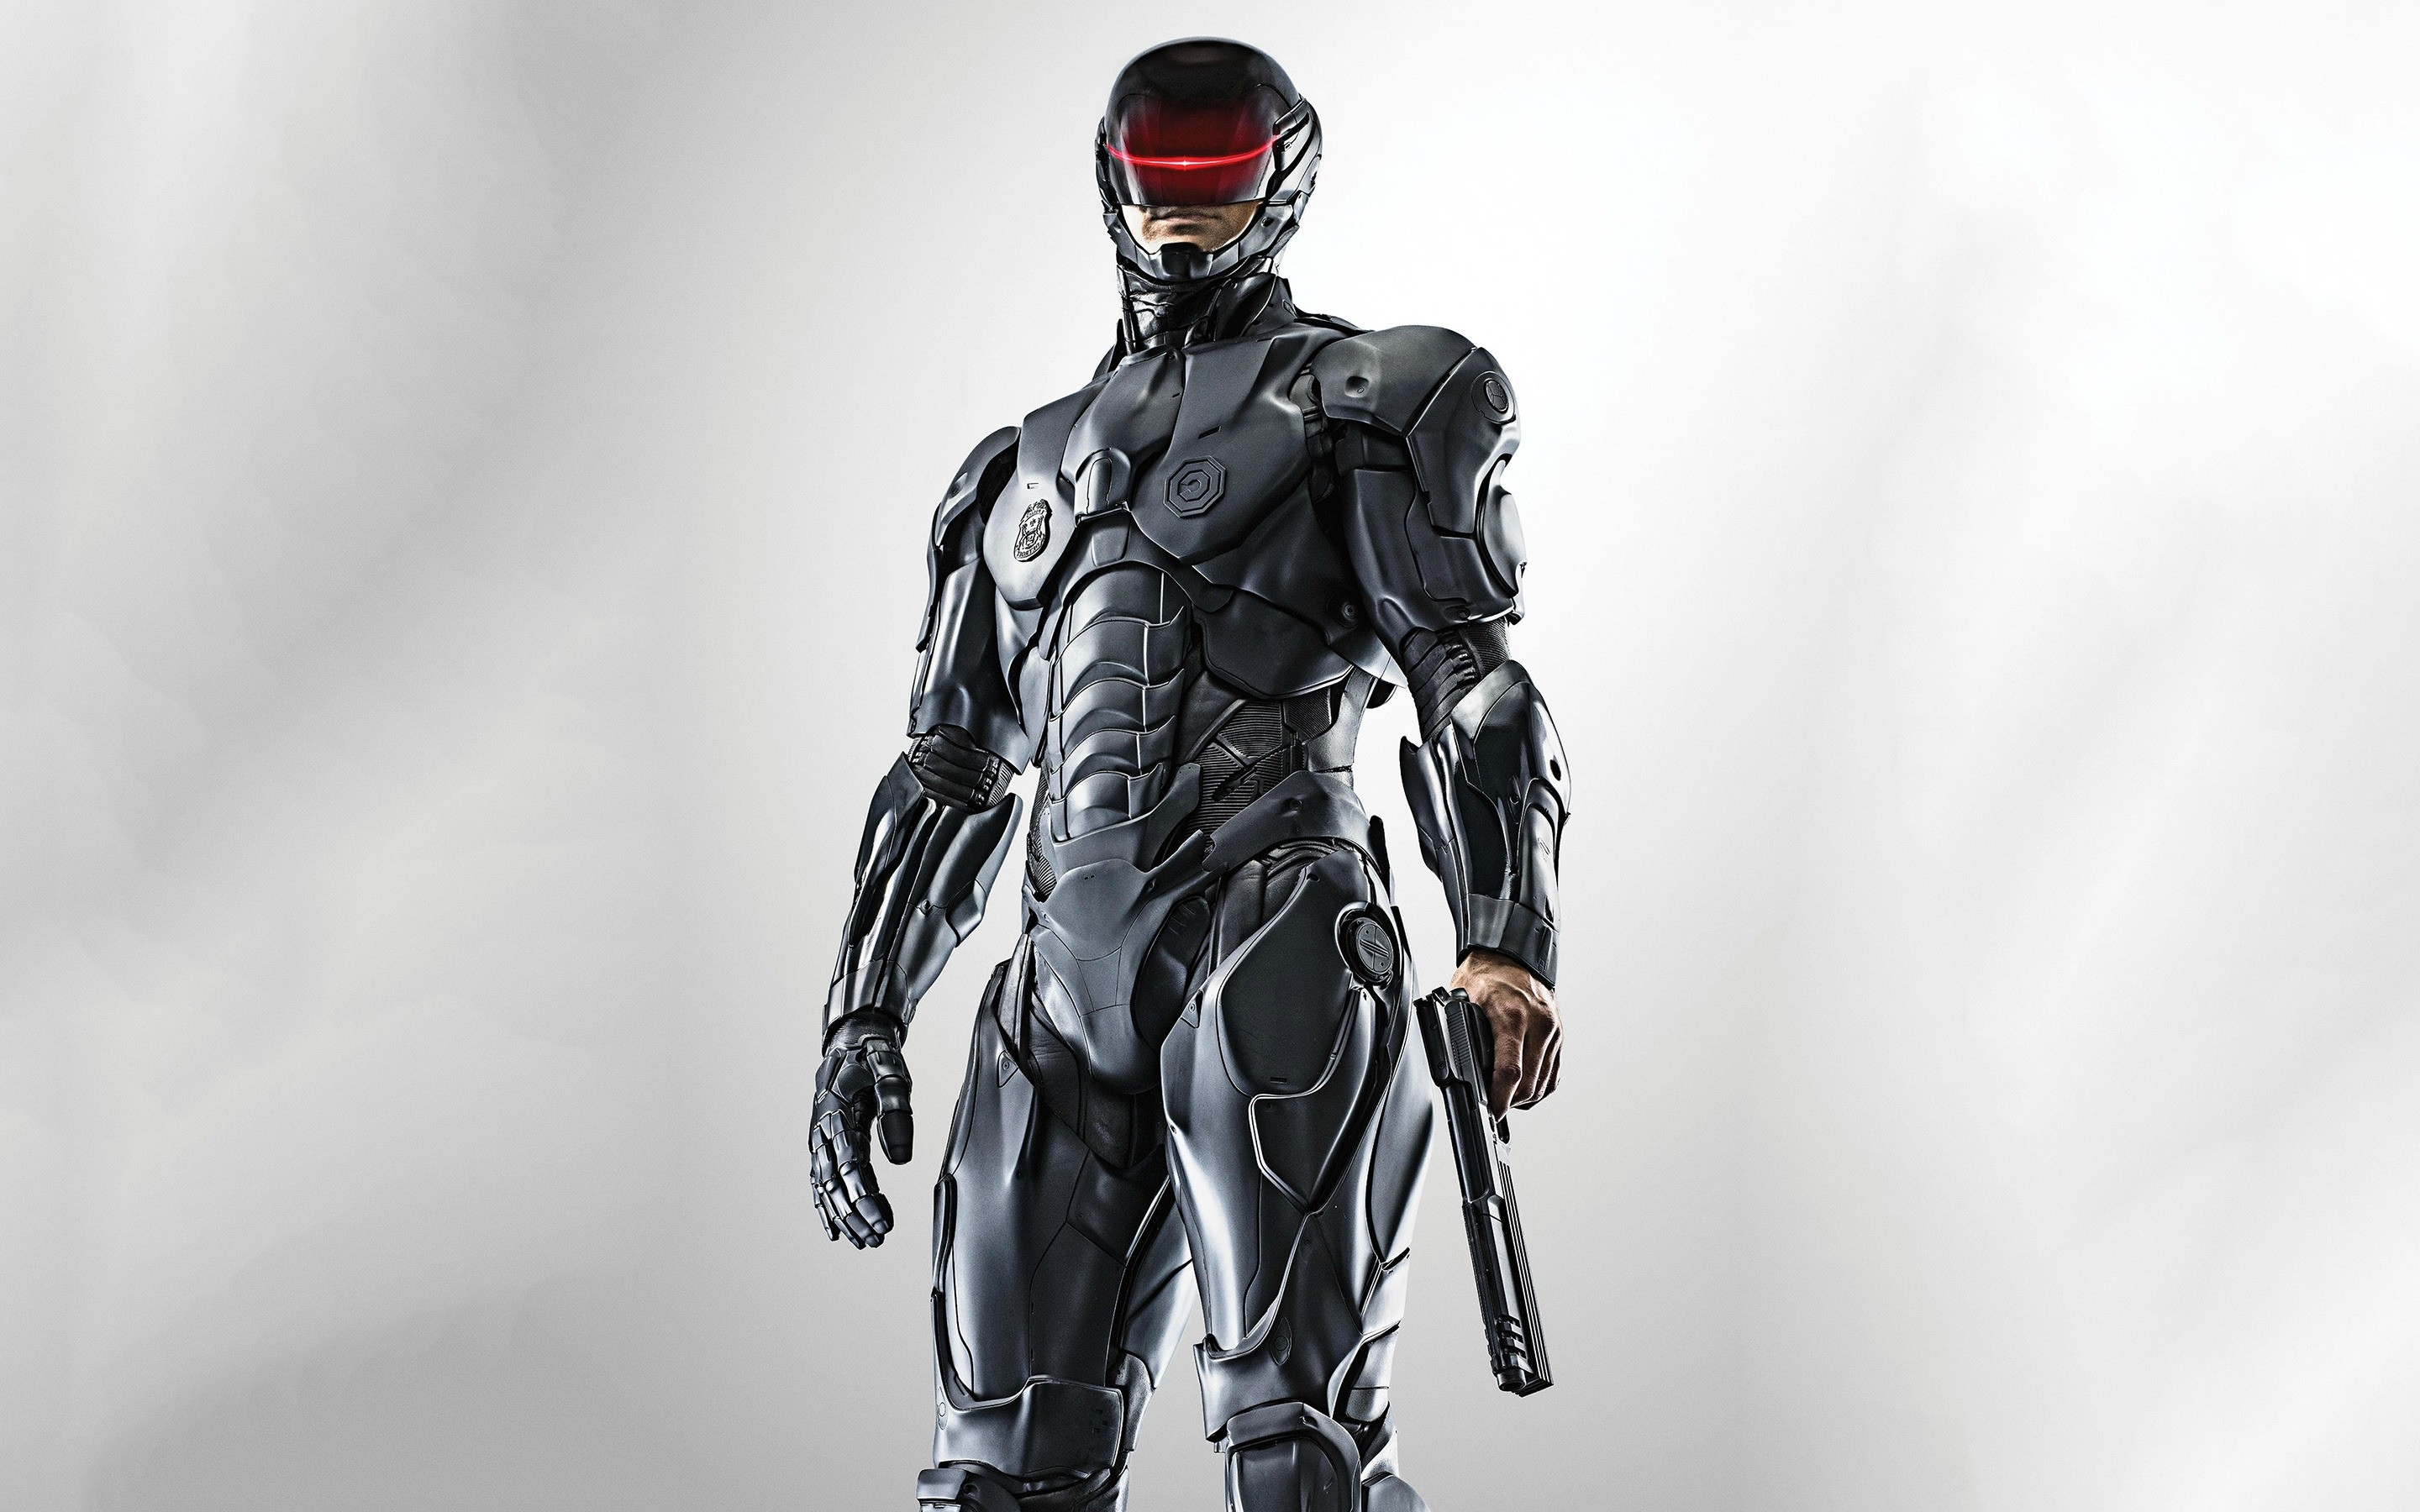 robocop armour suit, hd movies, 4k wallpapers, images, backgrounds